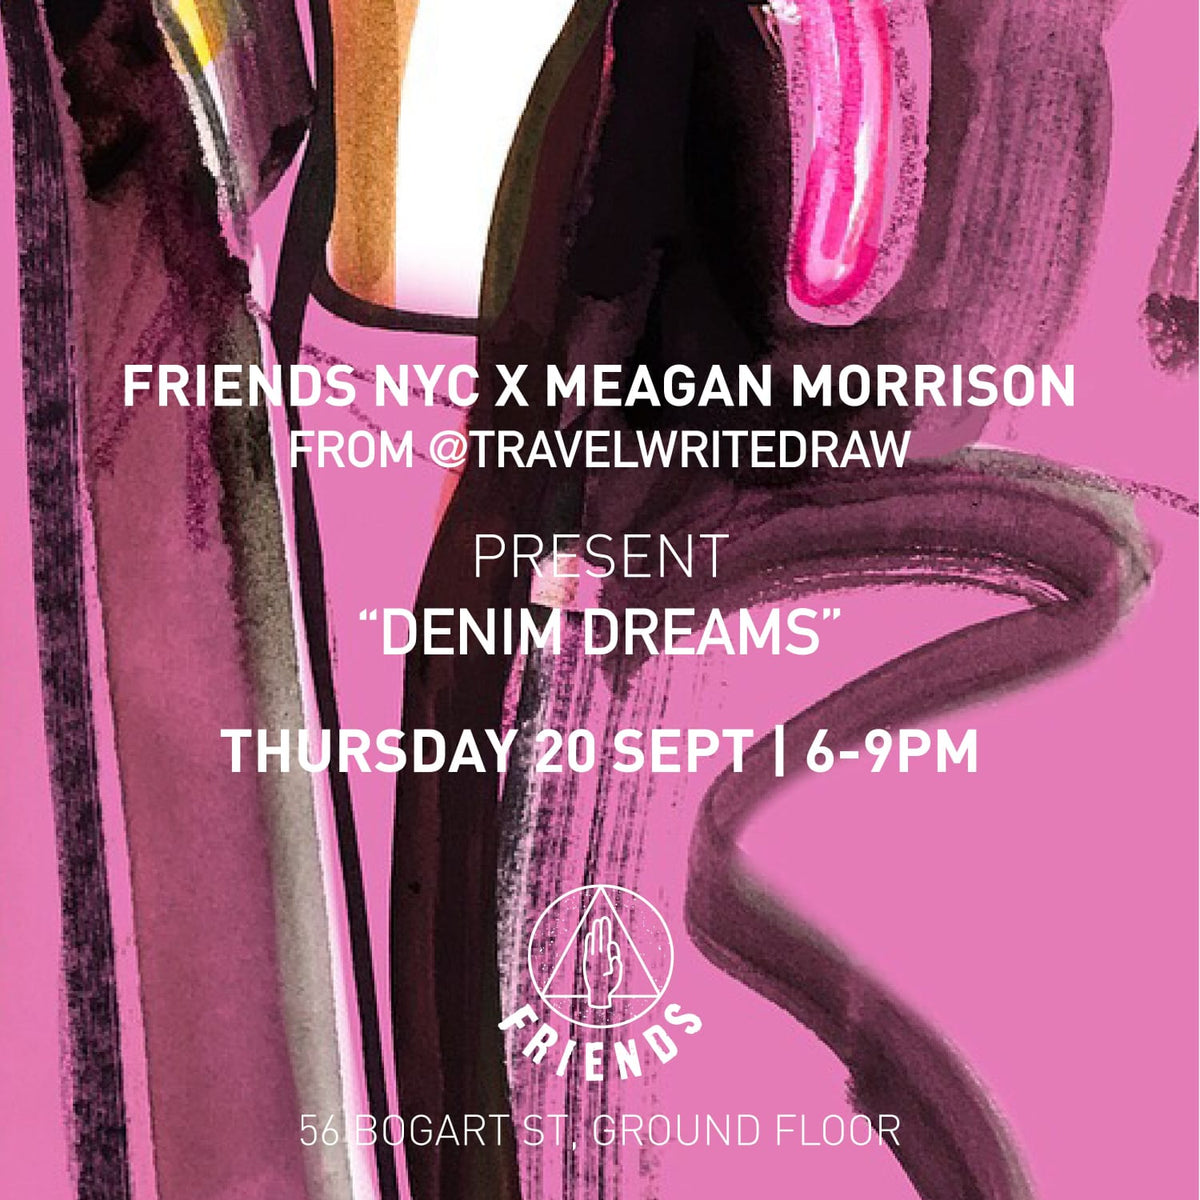 Meagan Morrison @TravelWriteDraw x Friends NYC